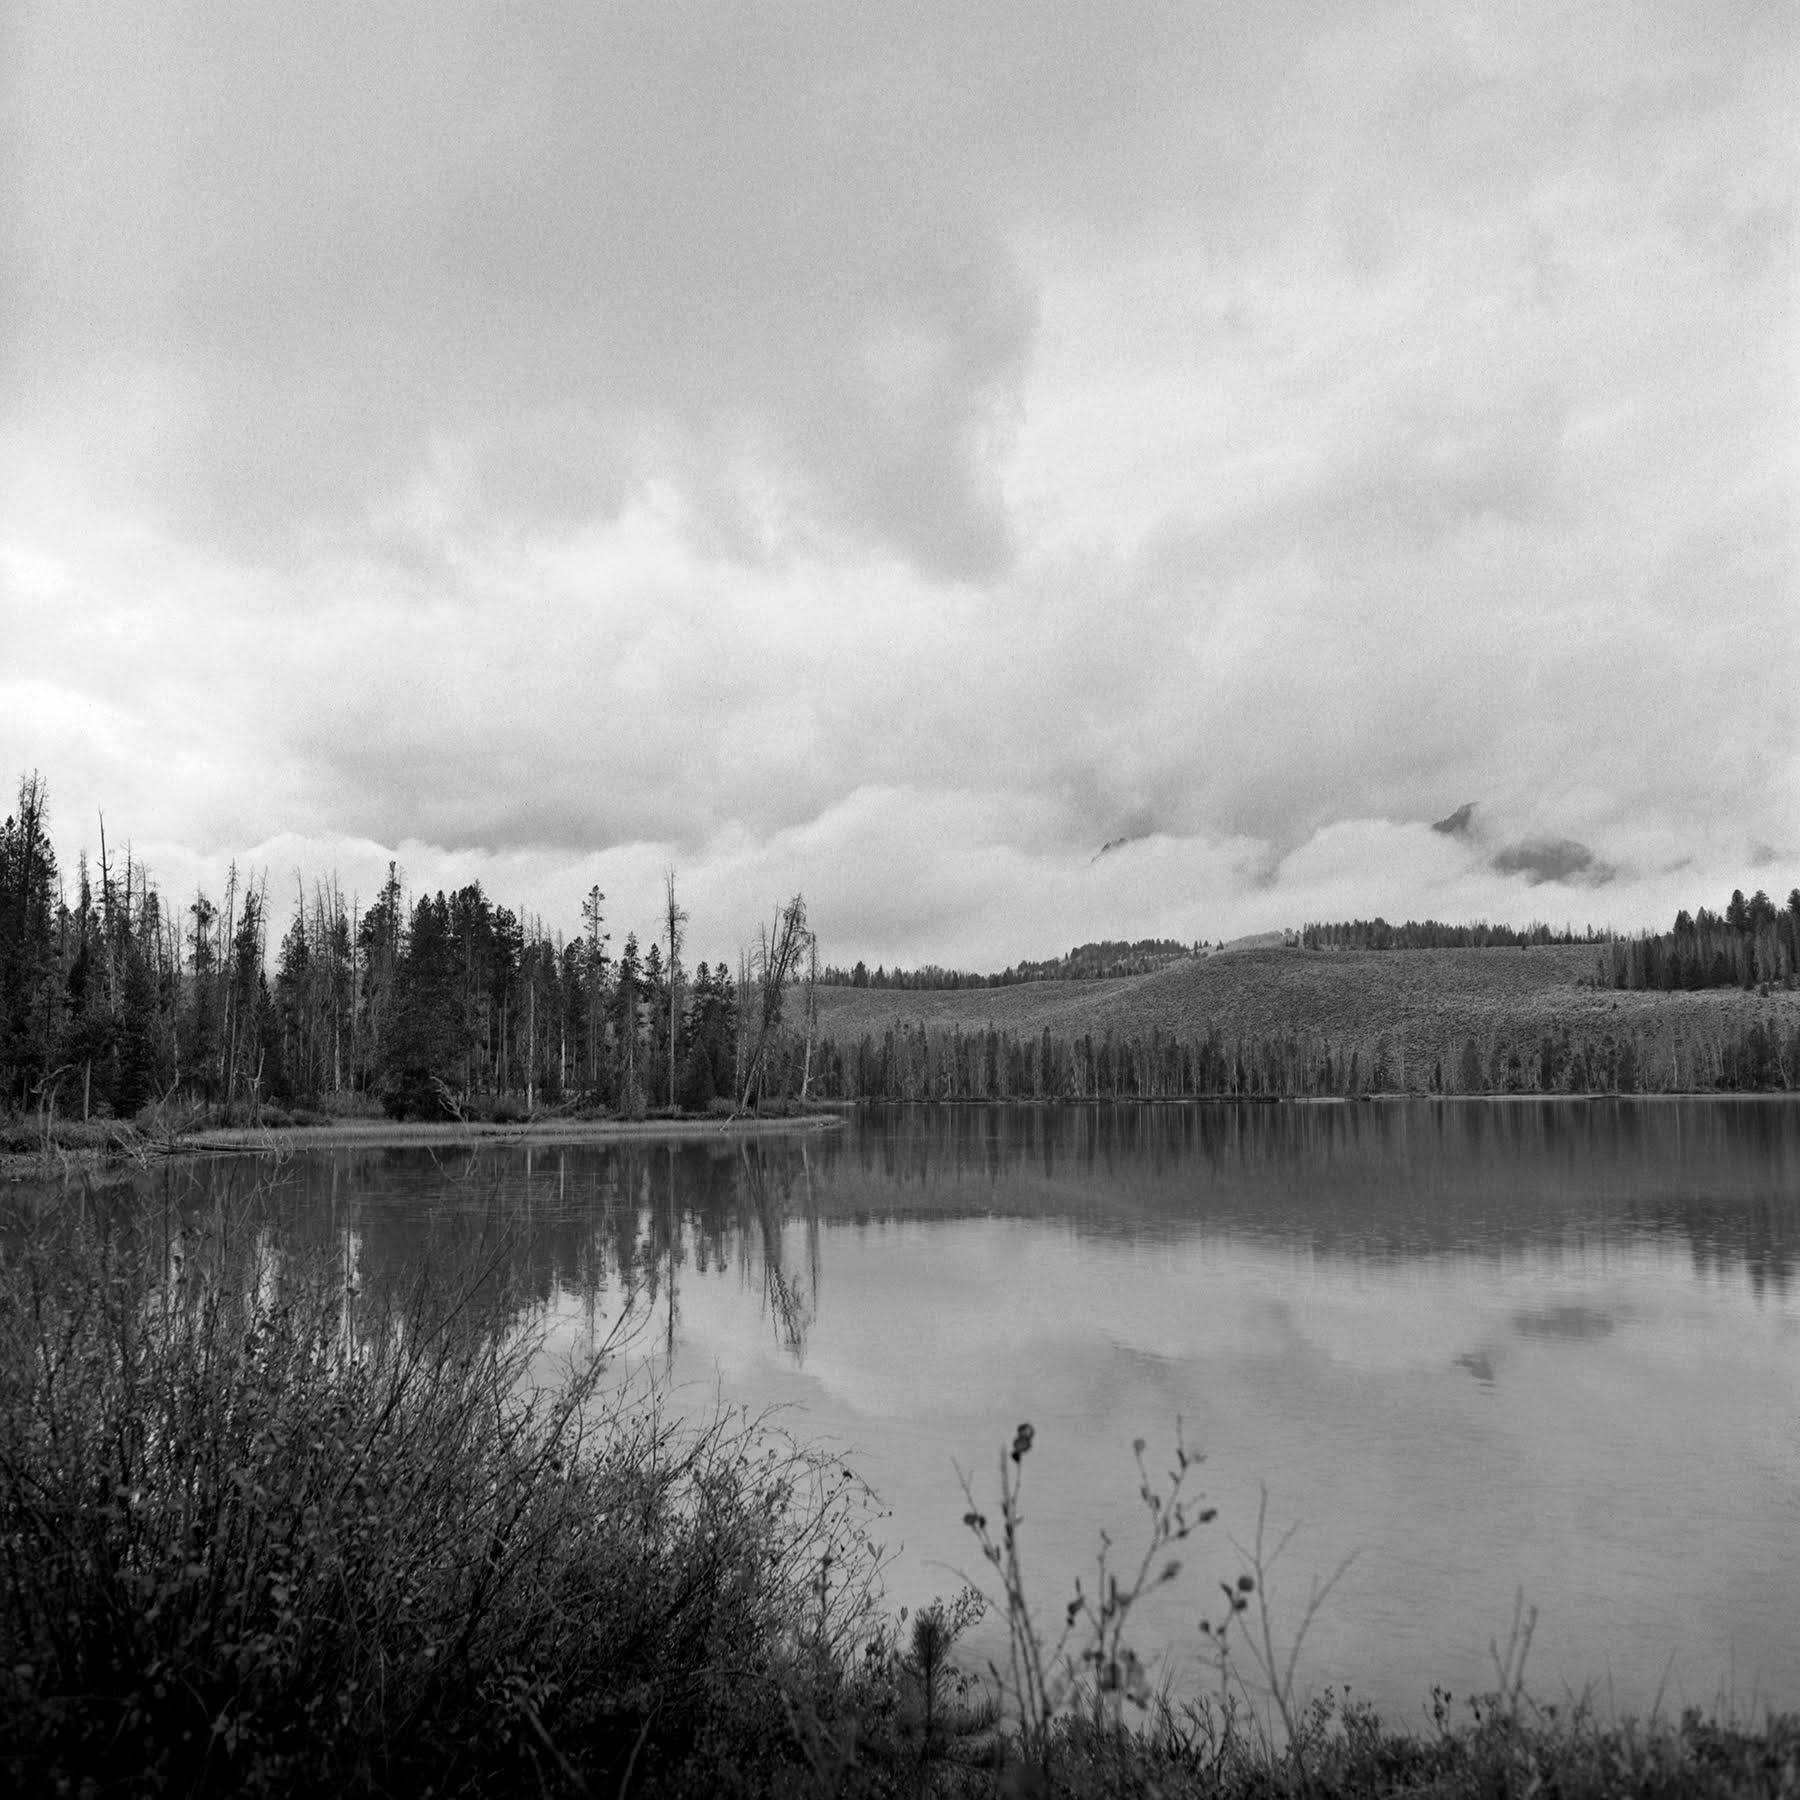 Evening view of the storm in the Sawtooth Mountains from Redfish Lake Rolleiflex FW, Ilford FP-4 plus